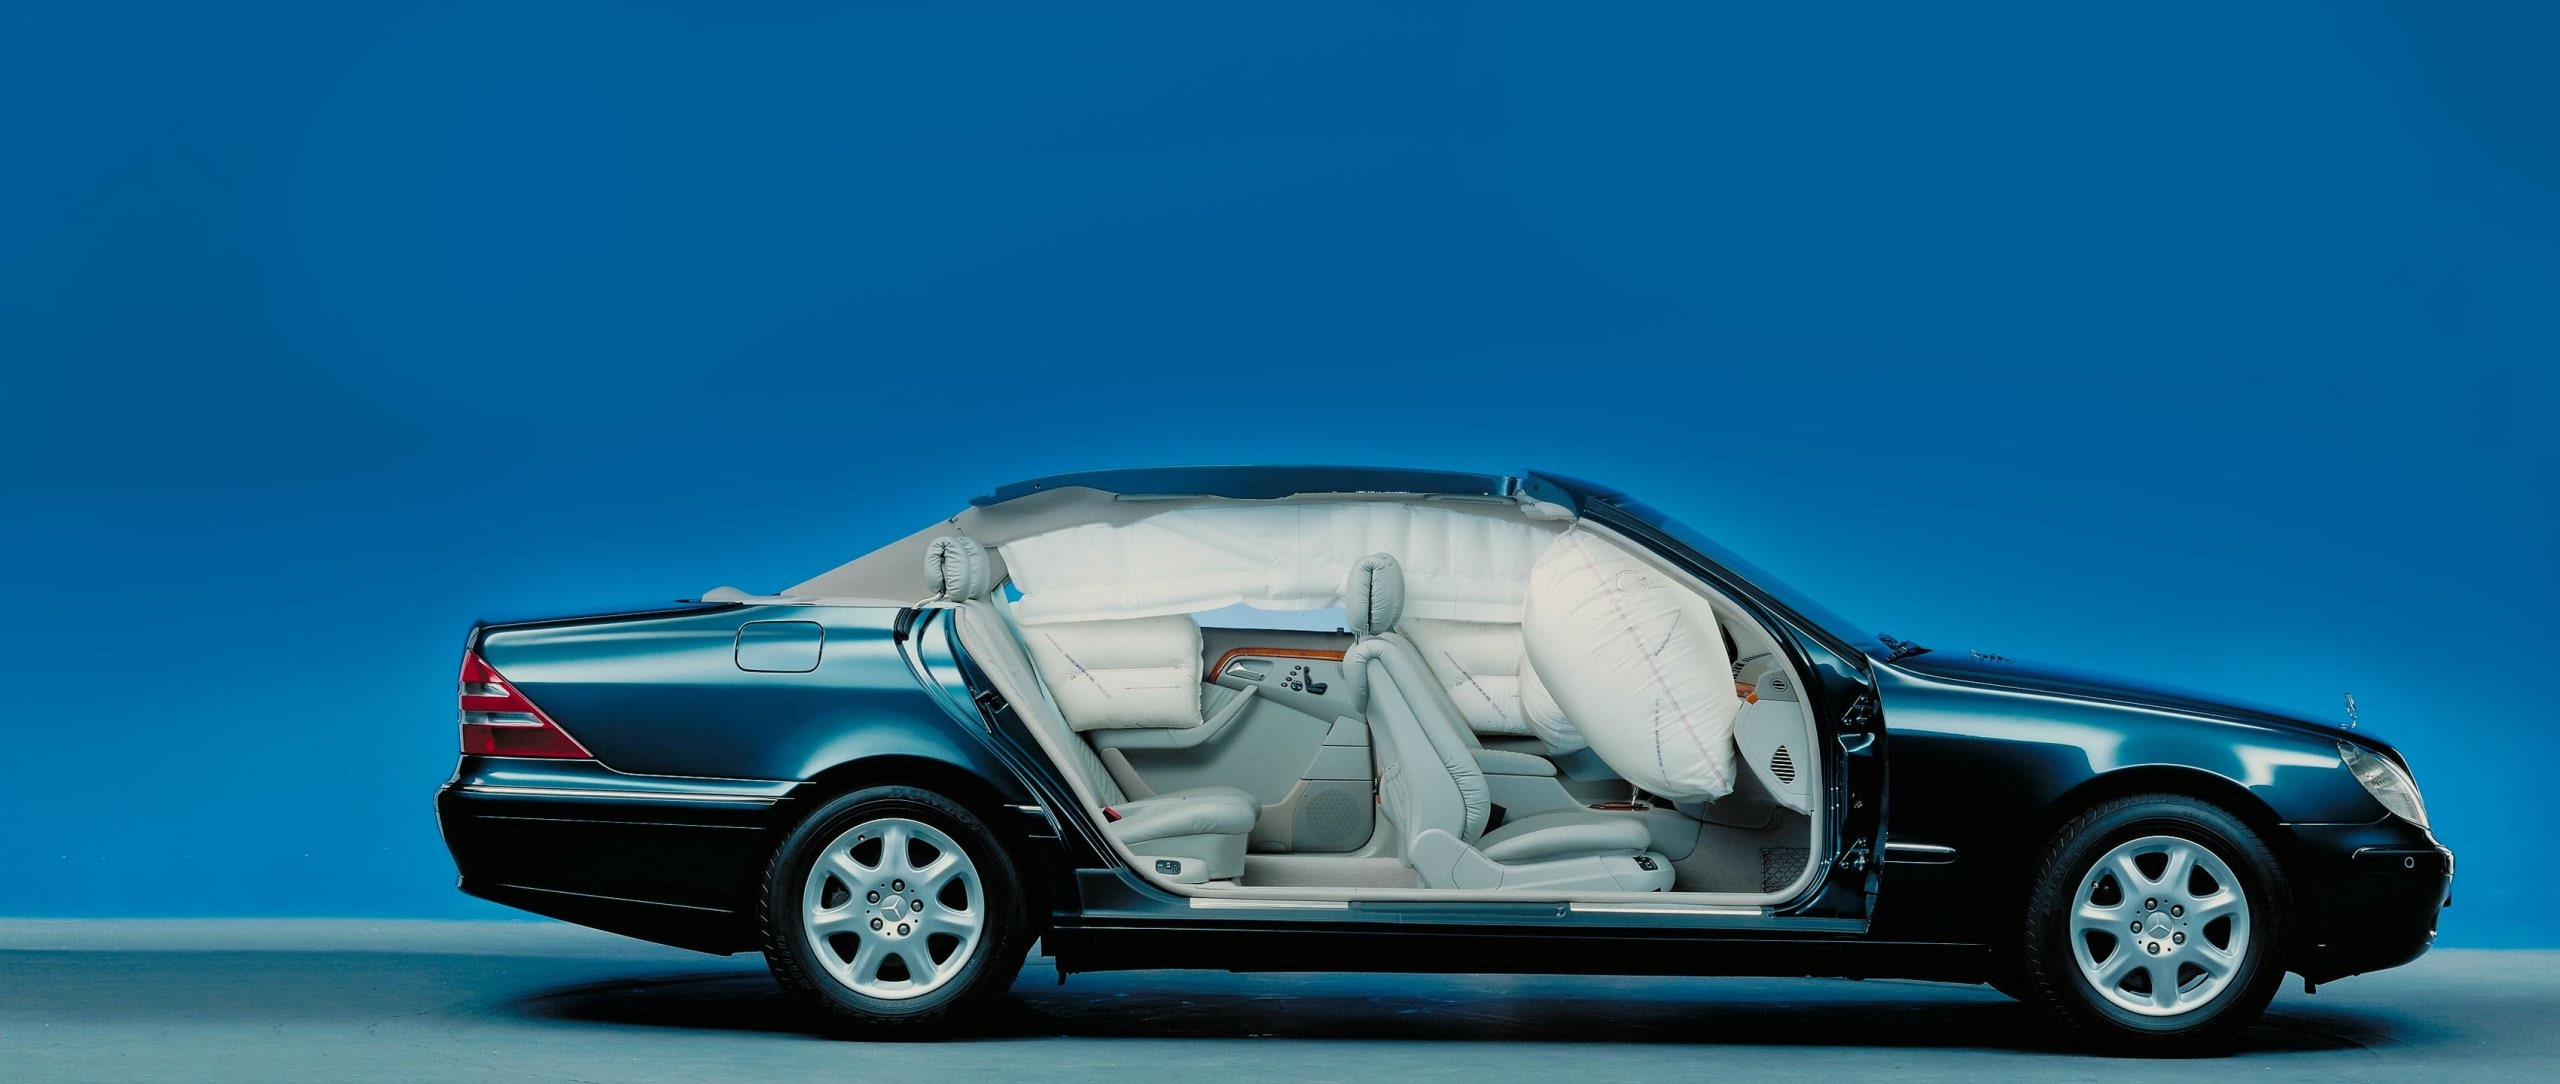 Mercedes-Benz Airbags celebrate their Anniversary.